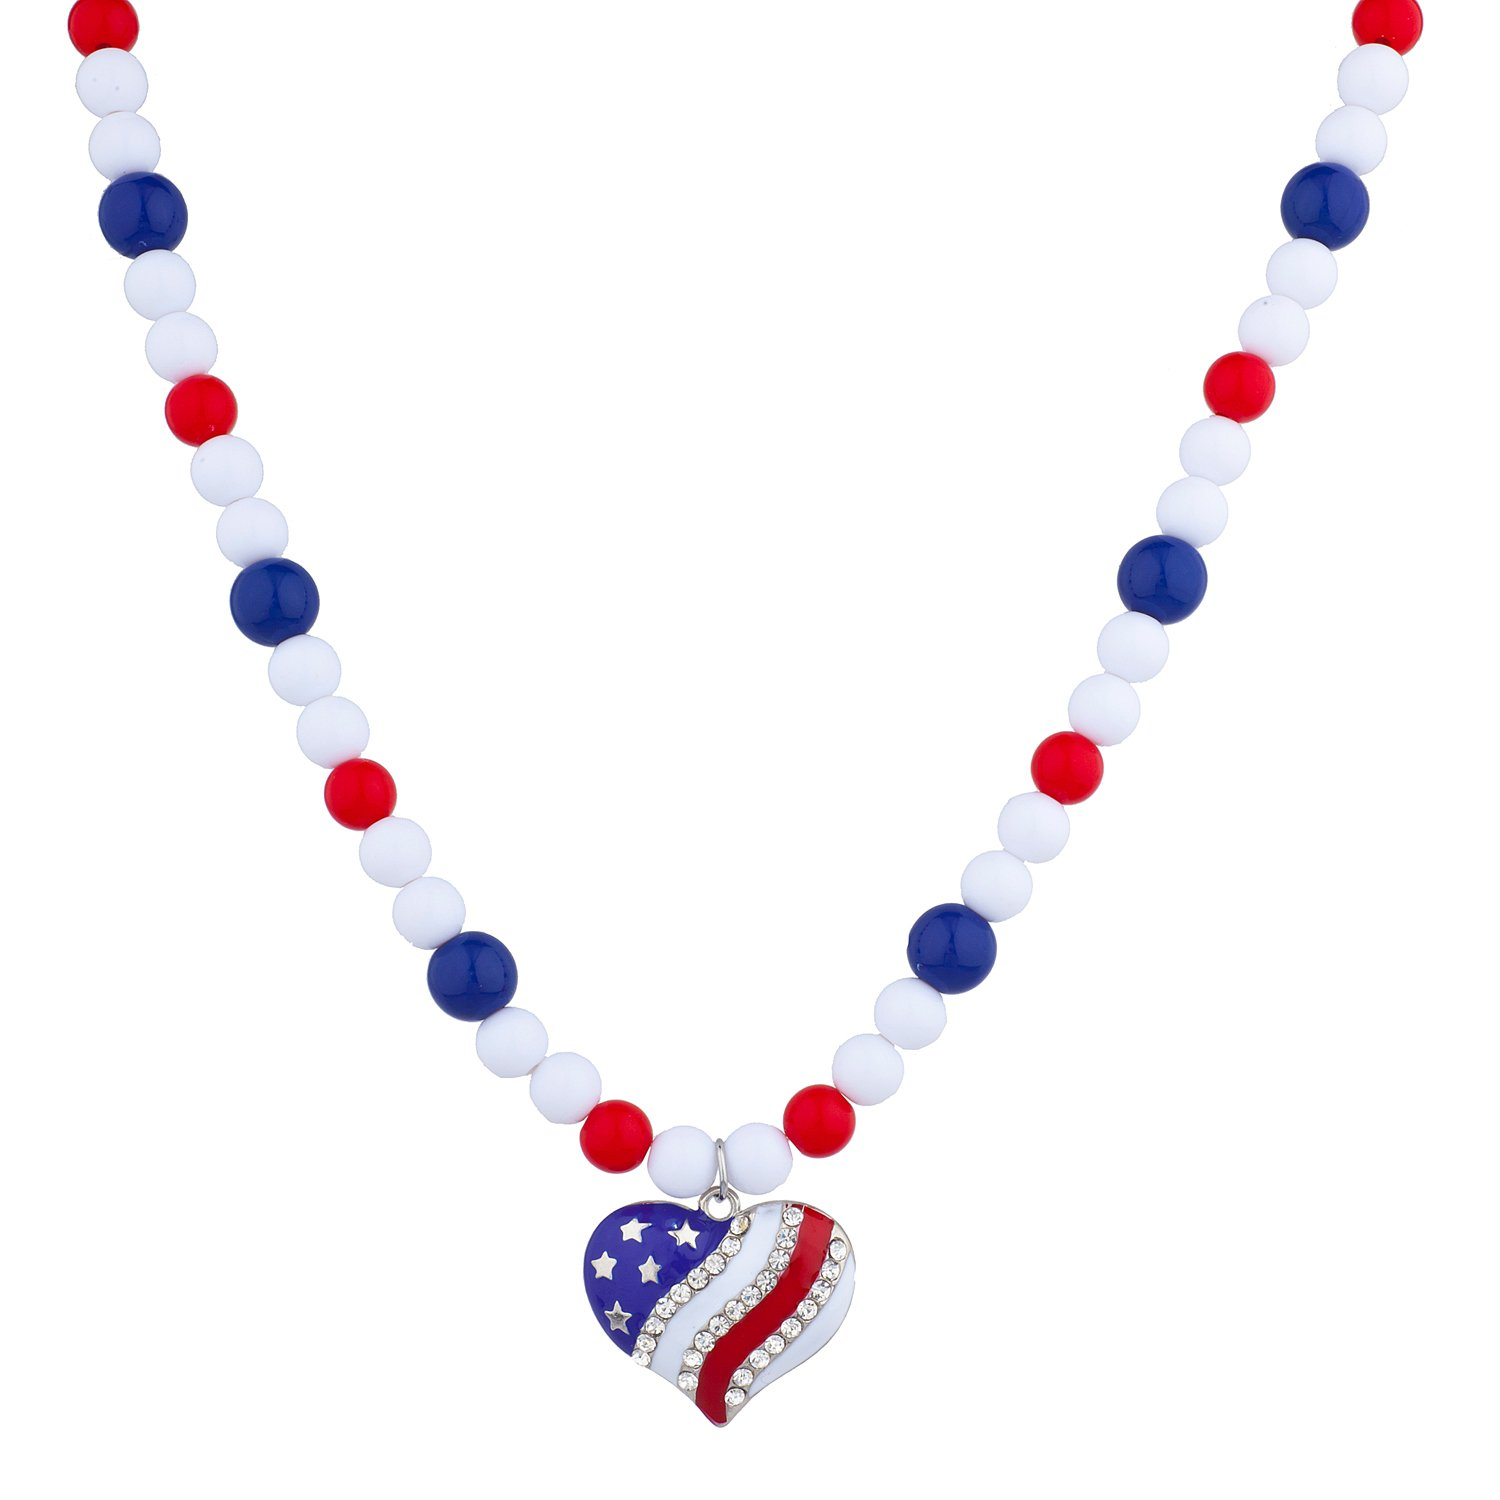 Lux Accessories USA Americana 4th of July American Pride Independence Day Pearl Strands Heart Necklace